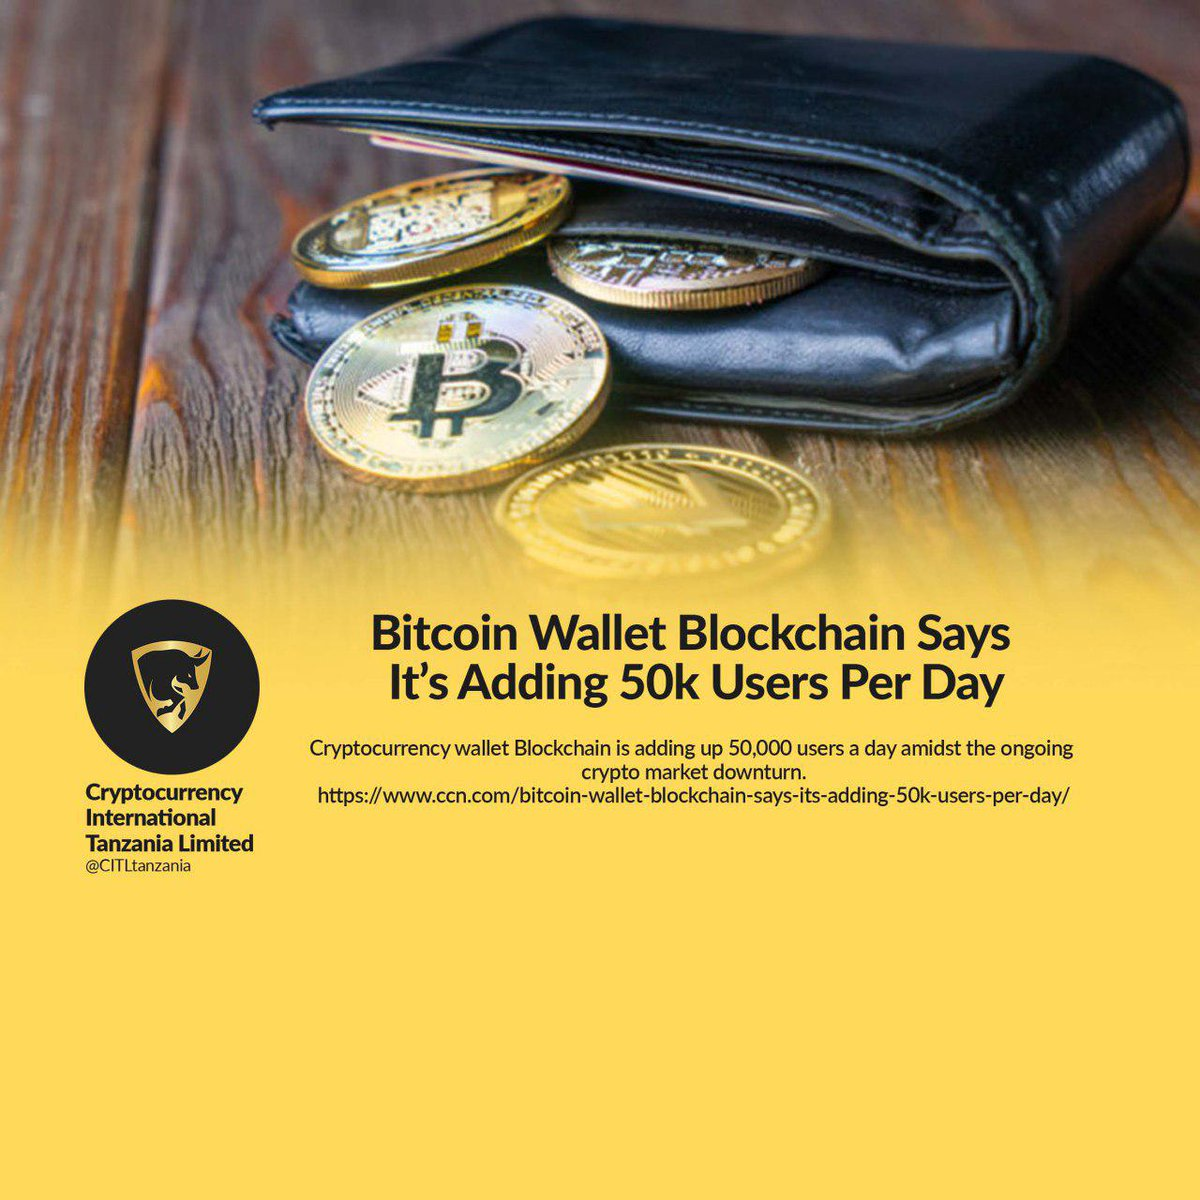 Bitcoin Wallet Blockchain Says It's Adding 50k Users Per Day #cryptocurrency #bitcoin #crypto #blockchain #ethereum #litecoin #btc #money #forex #trading #investing #coinbase #bitcoins #investor #eth #bitcoinmining #cryptonews #cryptocurrencies <br>http://pic.twitter.com/VTbzbZOfaO